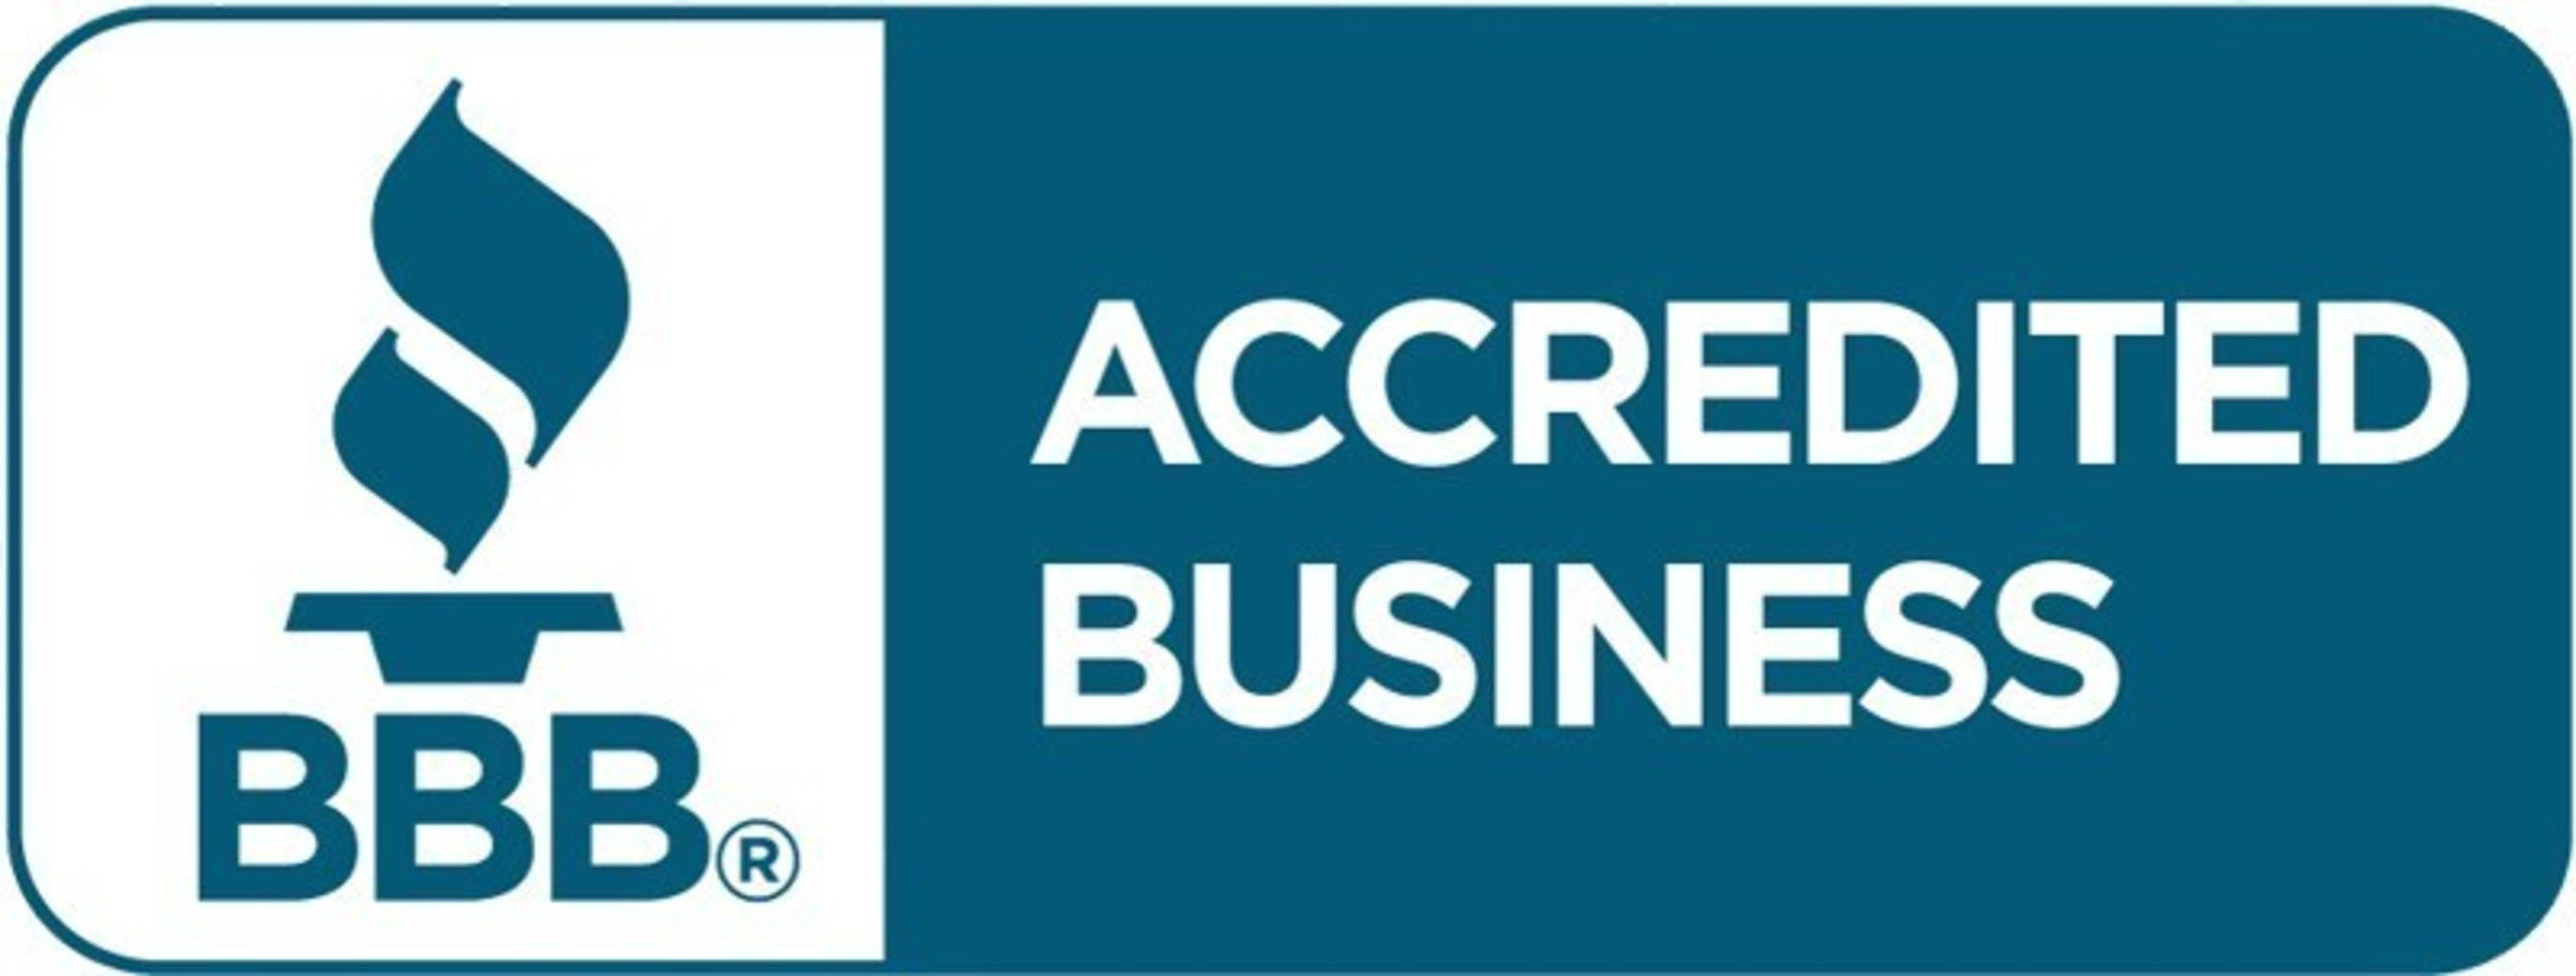 BBB Accredited Business (PRNewsFoto/Beacon Funding Corporation)